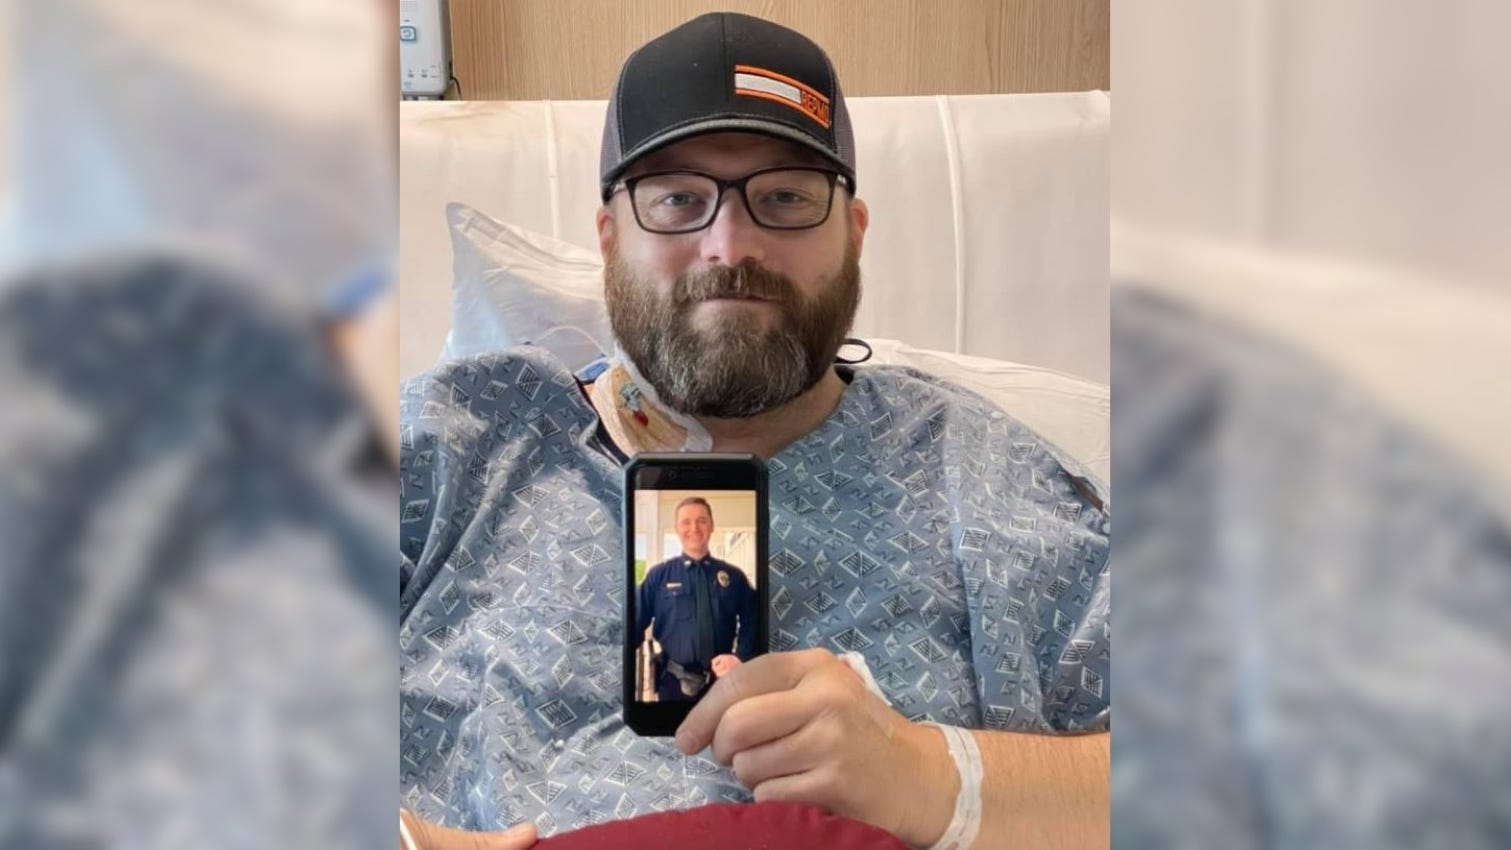 'I hope I can honor him'┃Kidney donated by fallen Missouri cop saves another officer's life